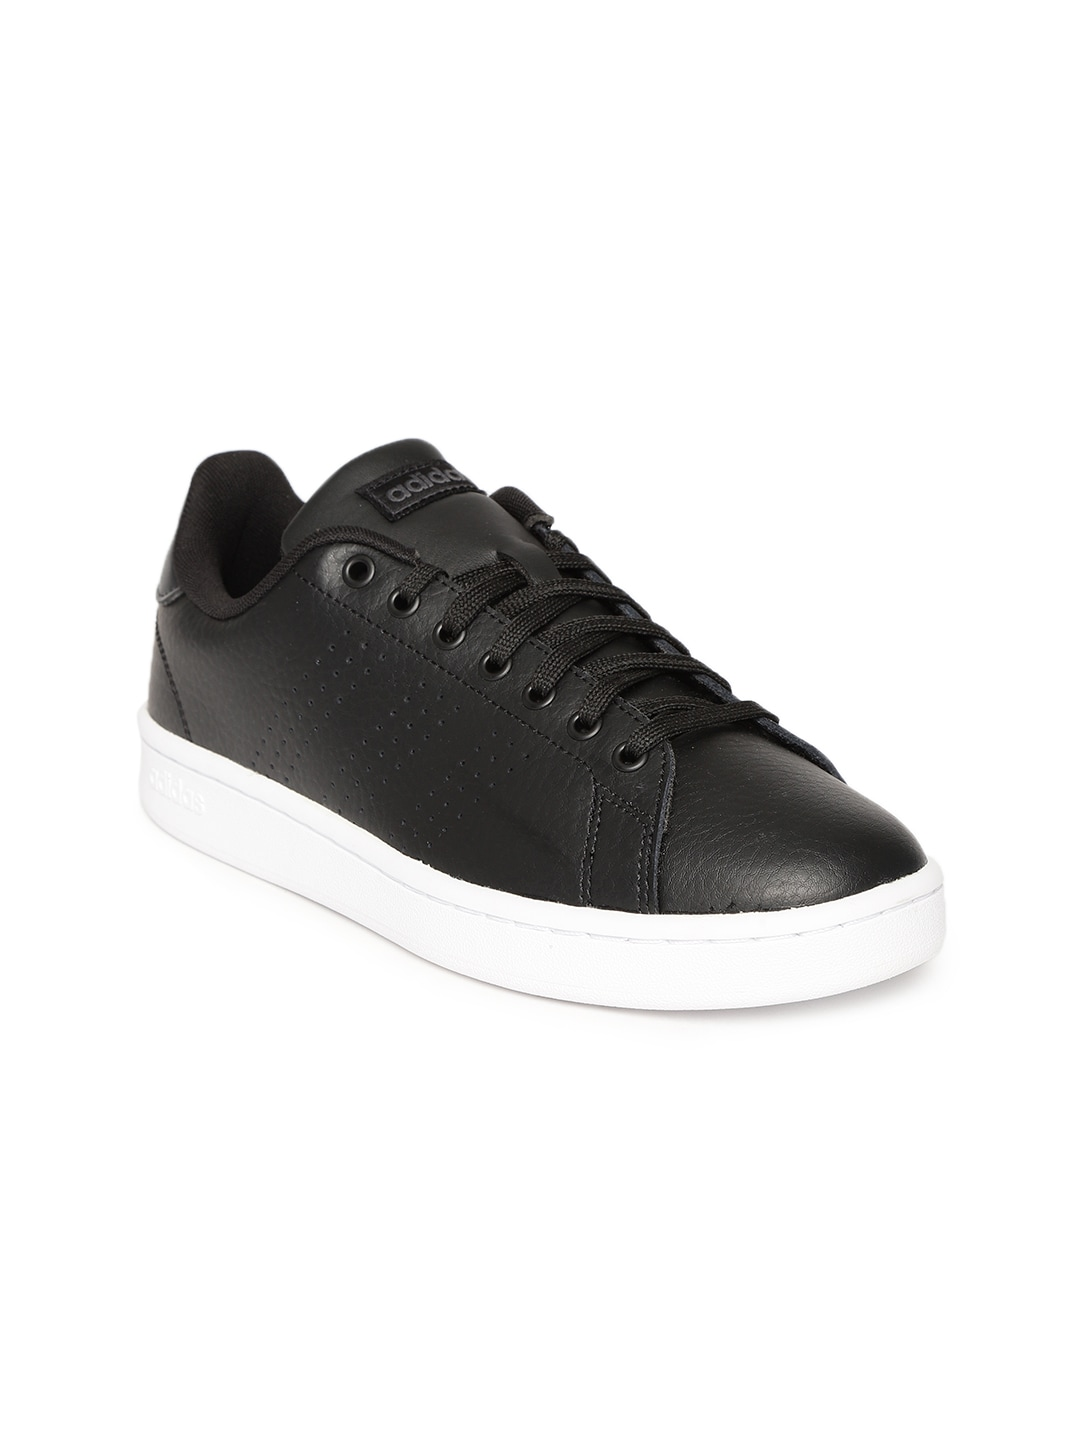 2b68fde76 Women s Adidas Shoes - Buy Adidas Shoes for Women Online in India